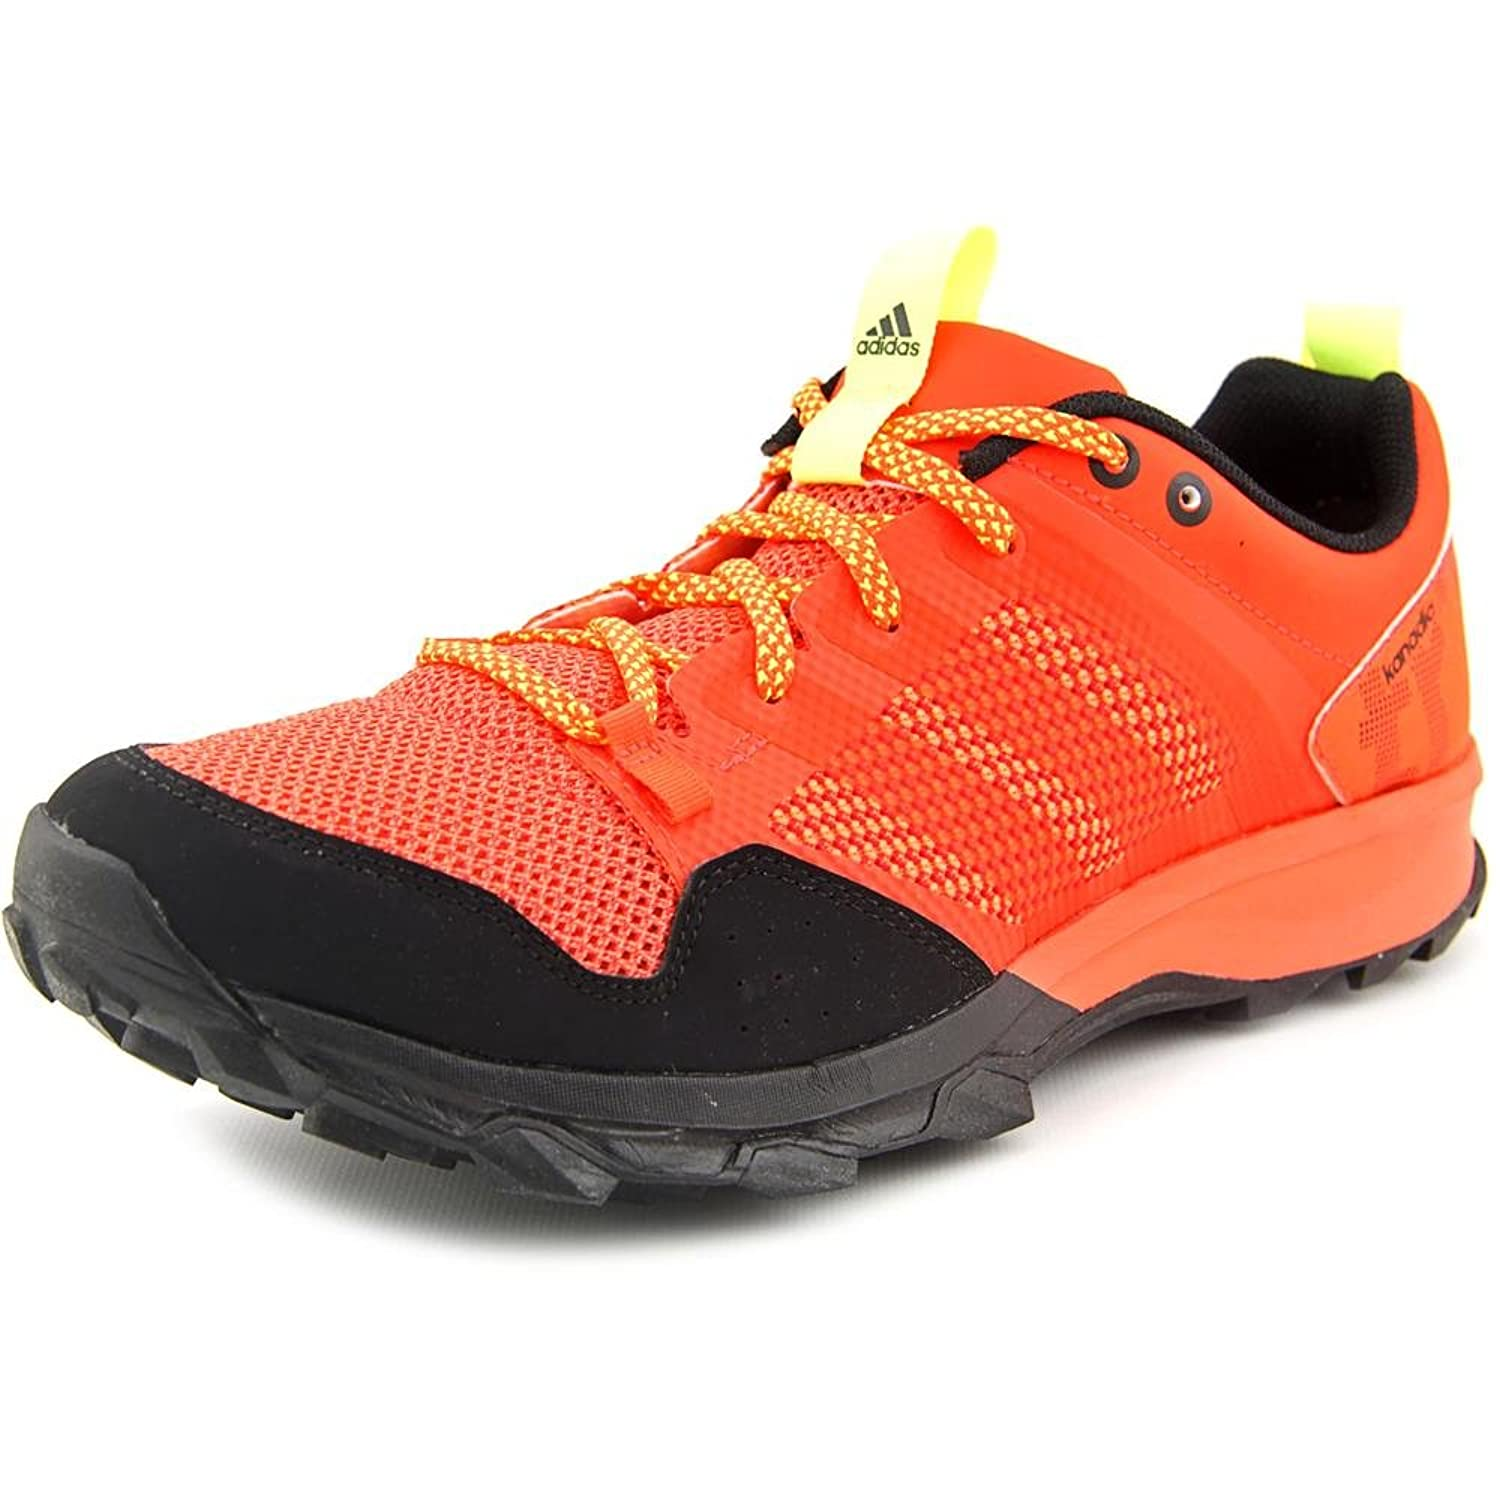 Adidas Kanadia 7 TR Men US 9 Orange Trail Running UK 8.5